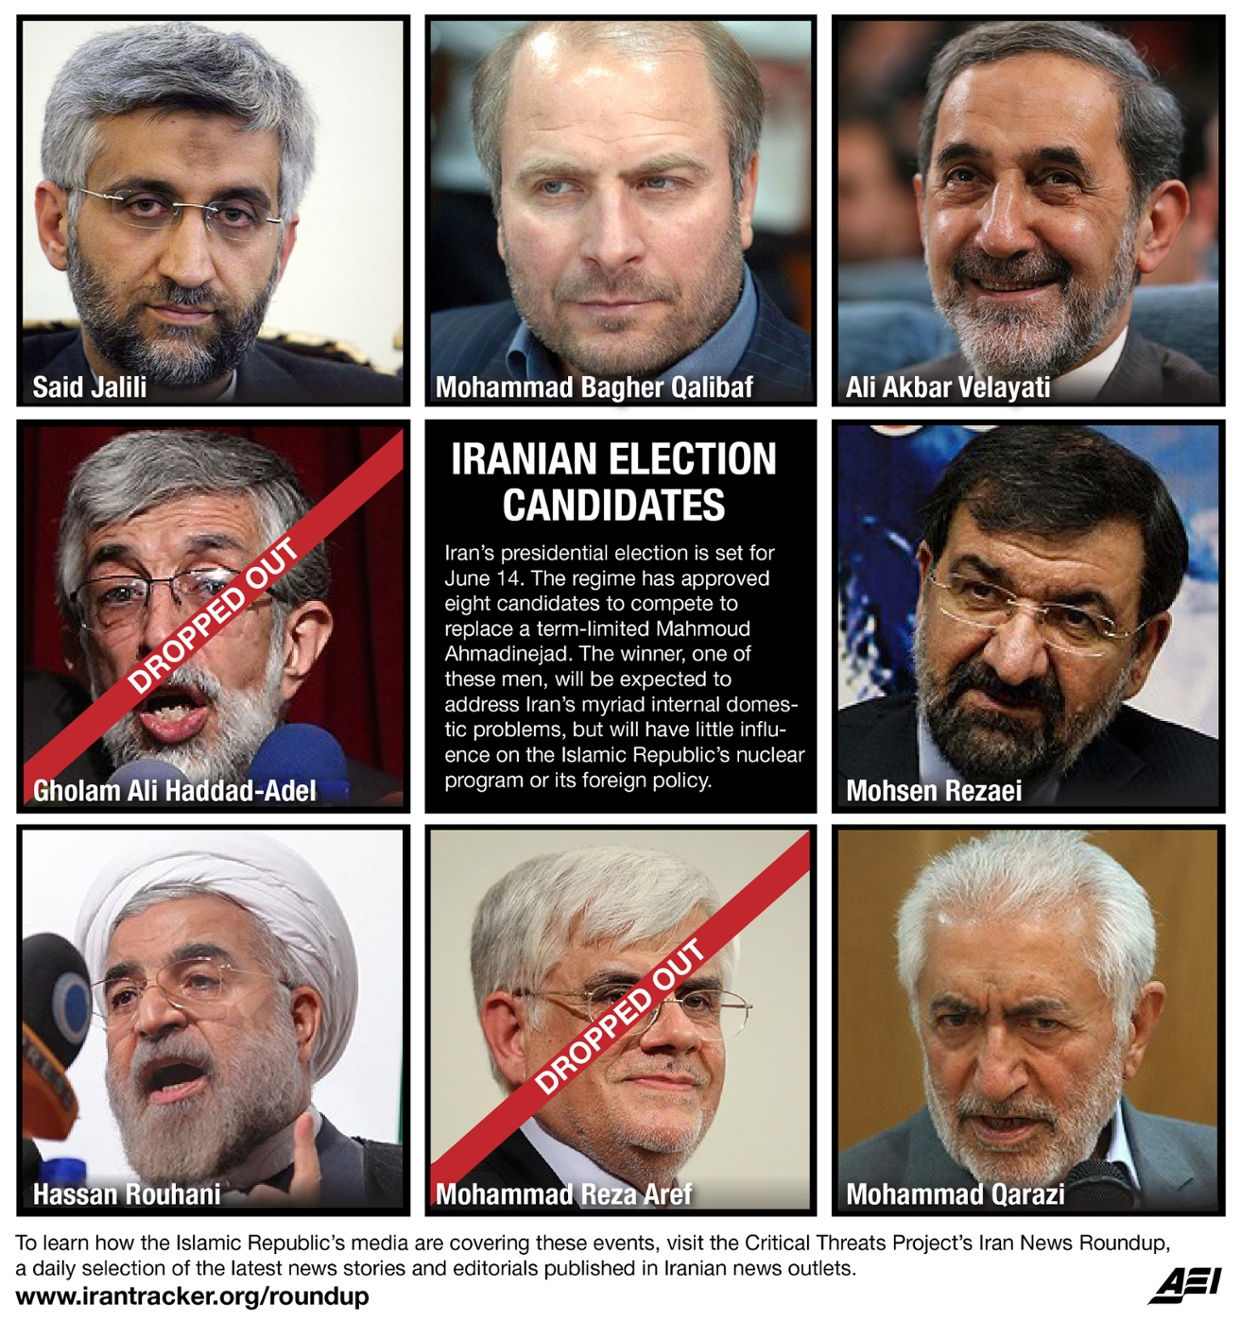 • Iran election lineup as of June 11, 2013